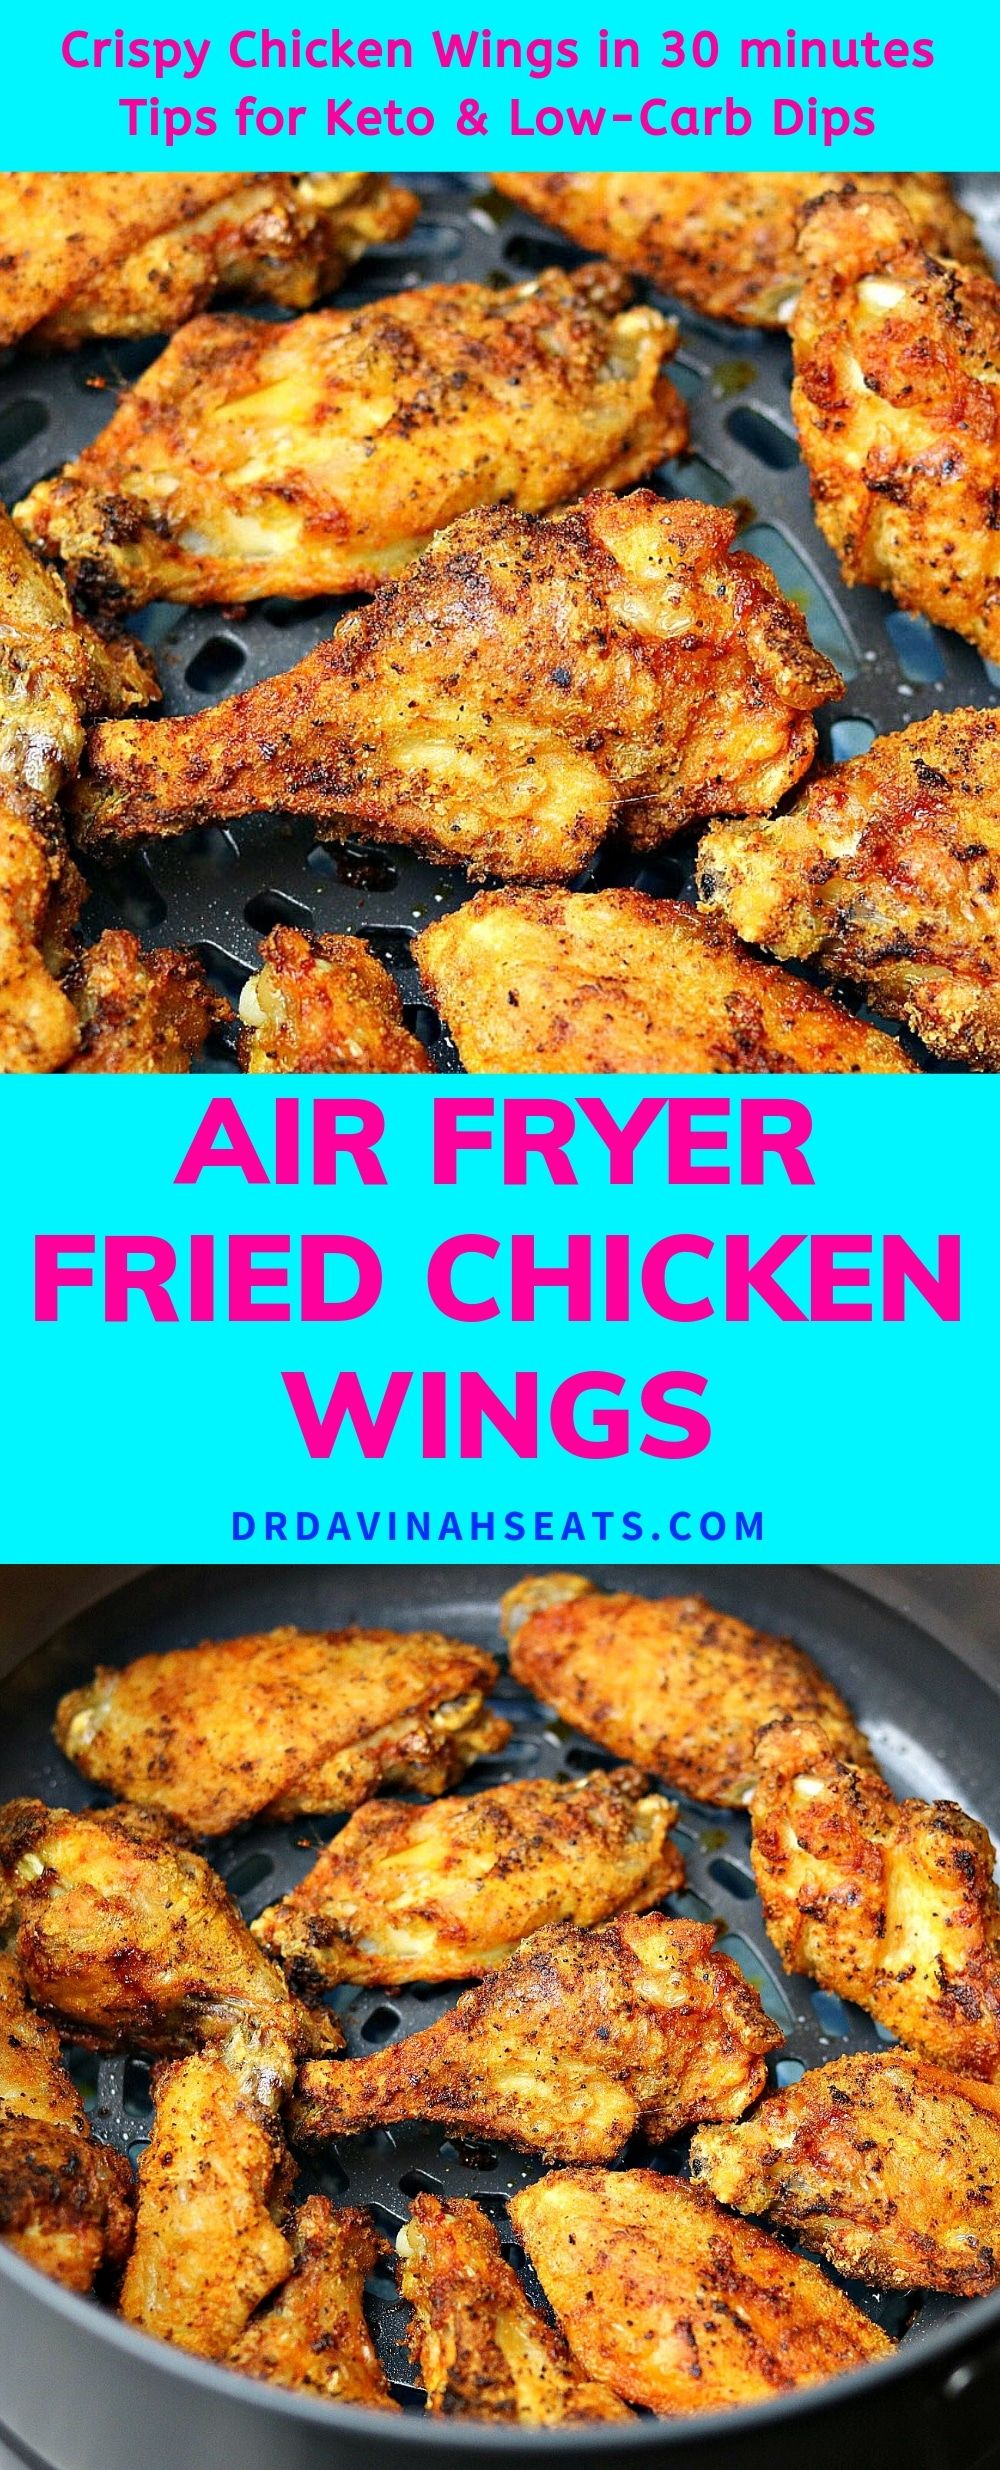 Air Fryer Fried Chicken Wings Recipe Healthy Recipes To Make